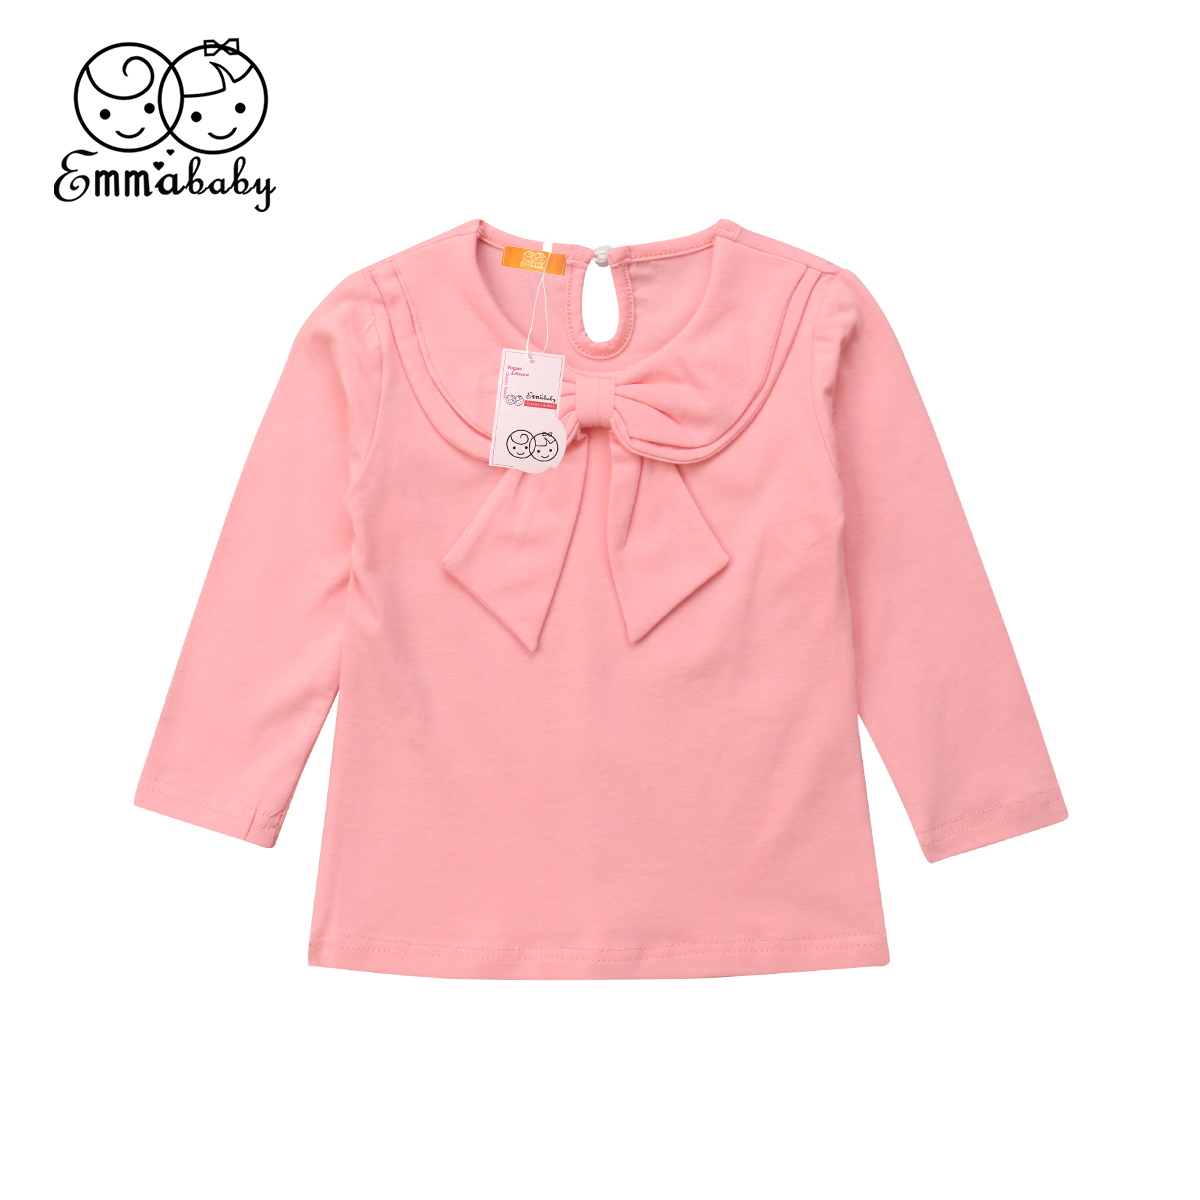 1pcs Toddler Kids Baby Girl Bowknot Peter Pan Collar Cotton T-shirt Long Sleeve